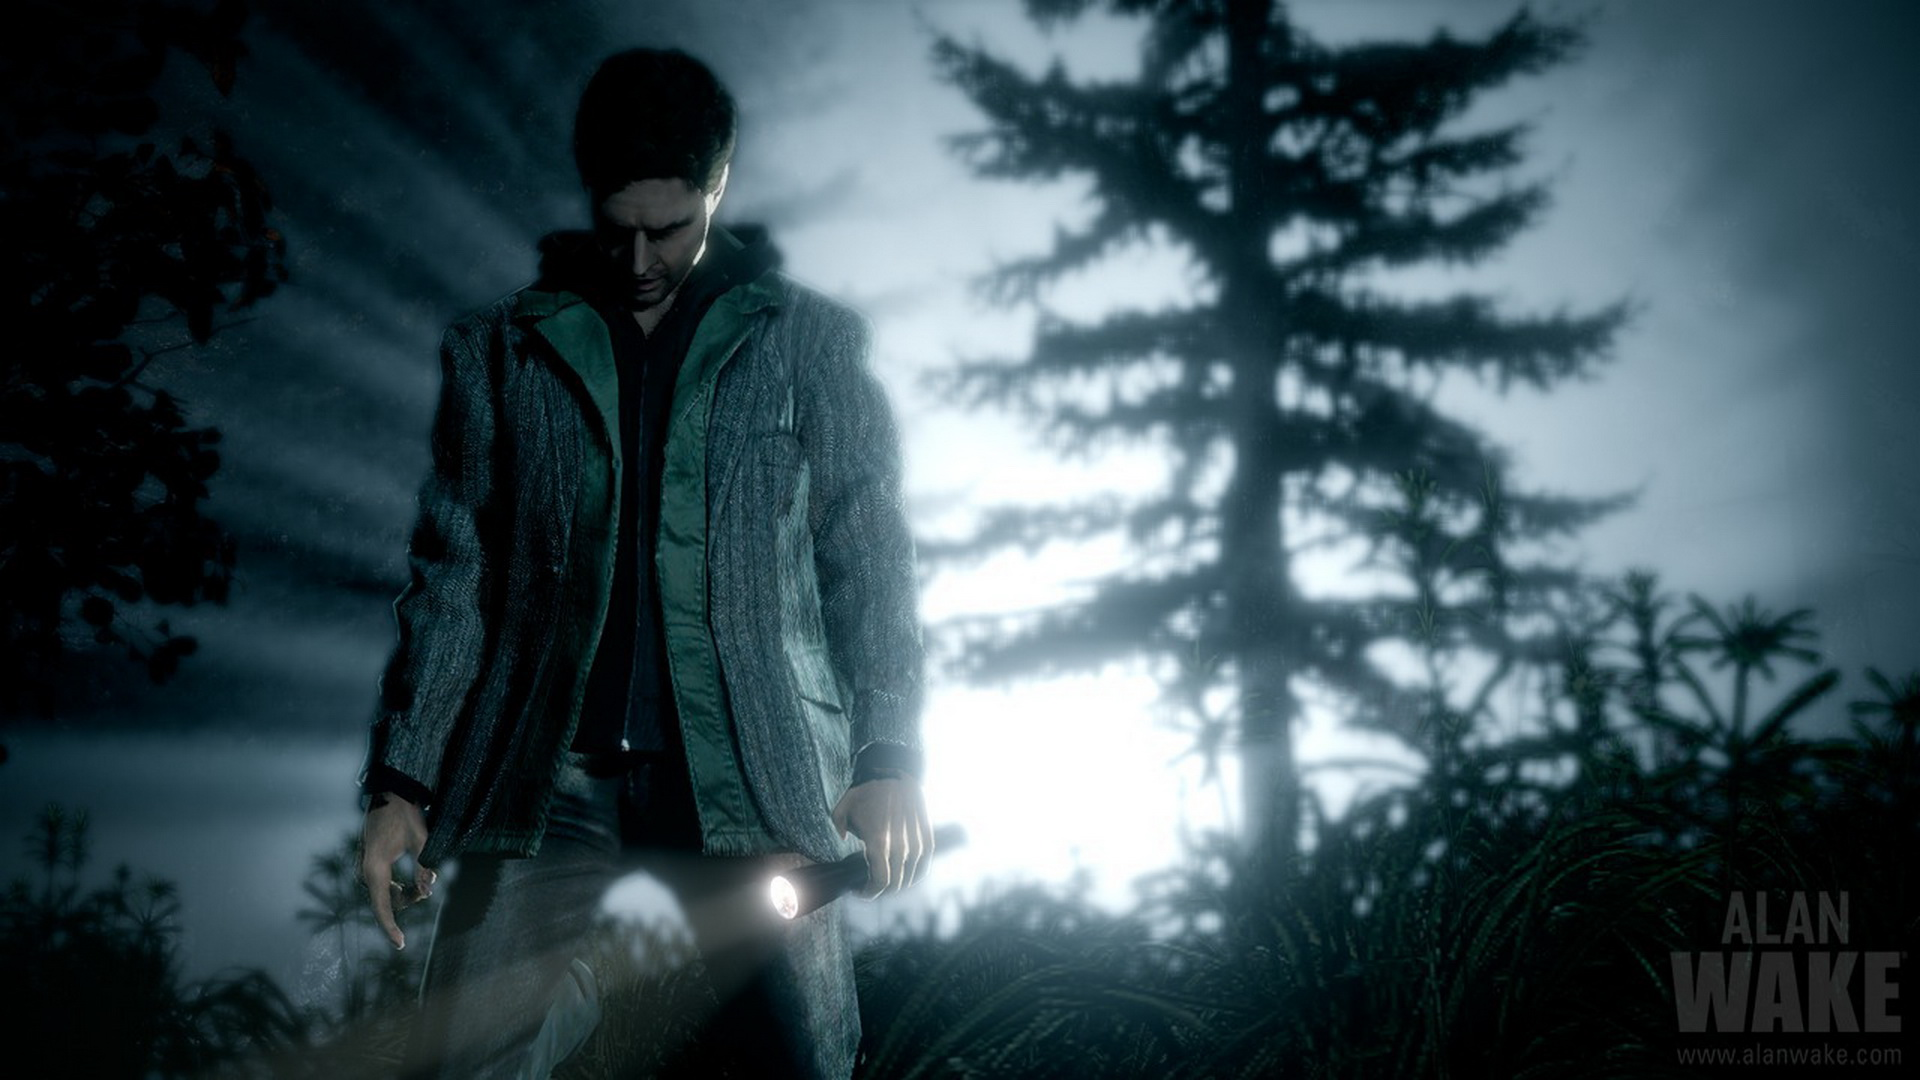 Alan Wake 2 to be revealed at The Game Awards?